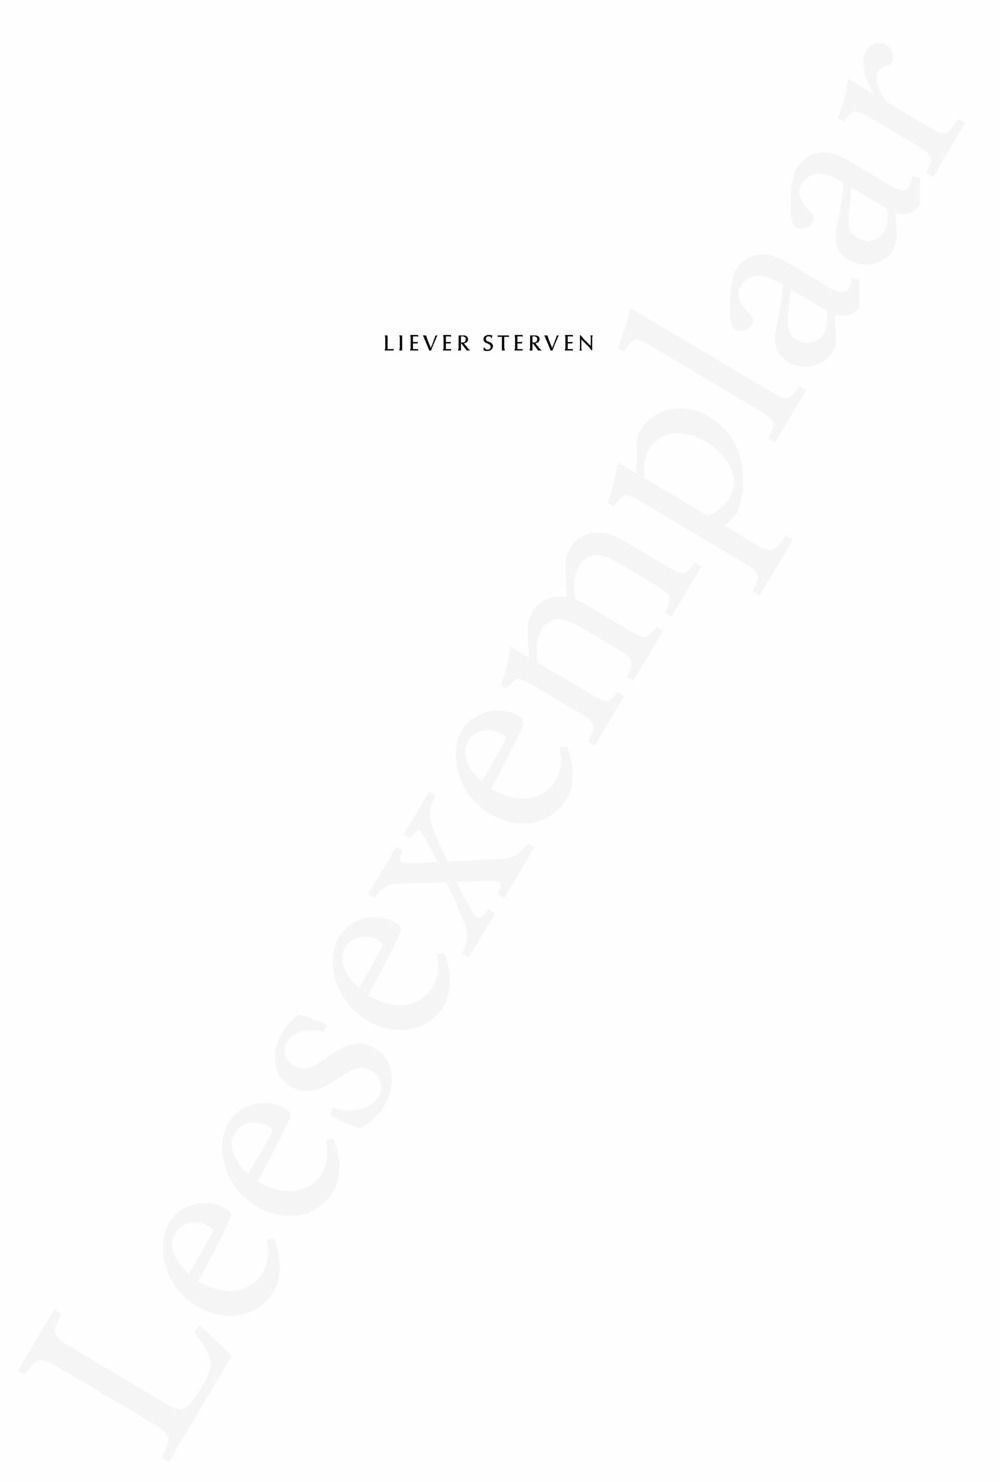 Preview: Liever sterven